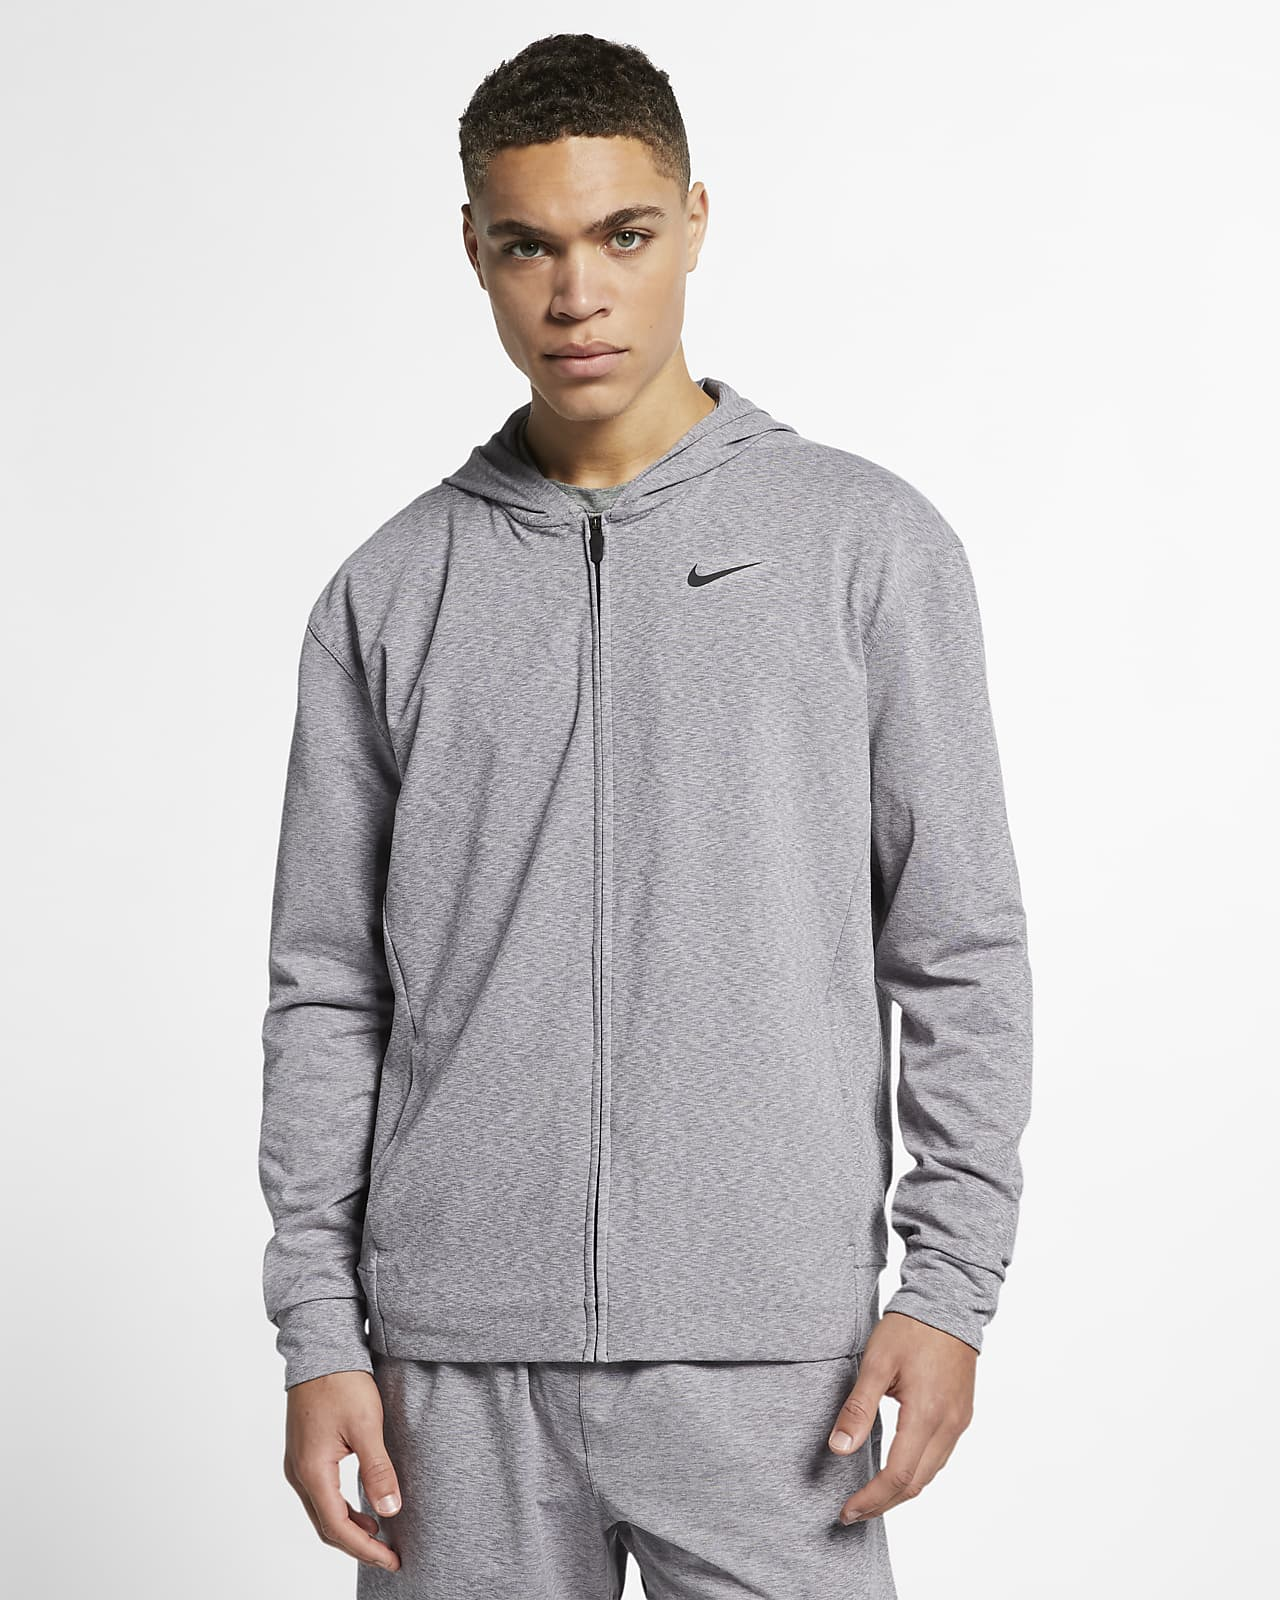 Enfriarse encuentro popular  Nike Dri-FIT Men's Full-Zip Yoga Training Hoodie. Nike LU